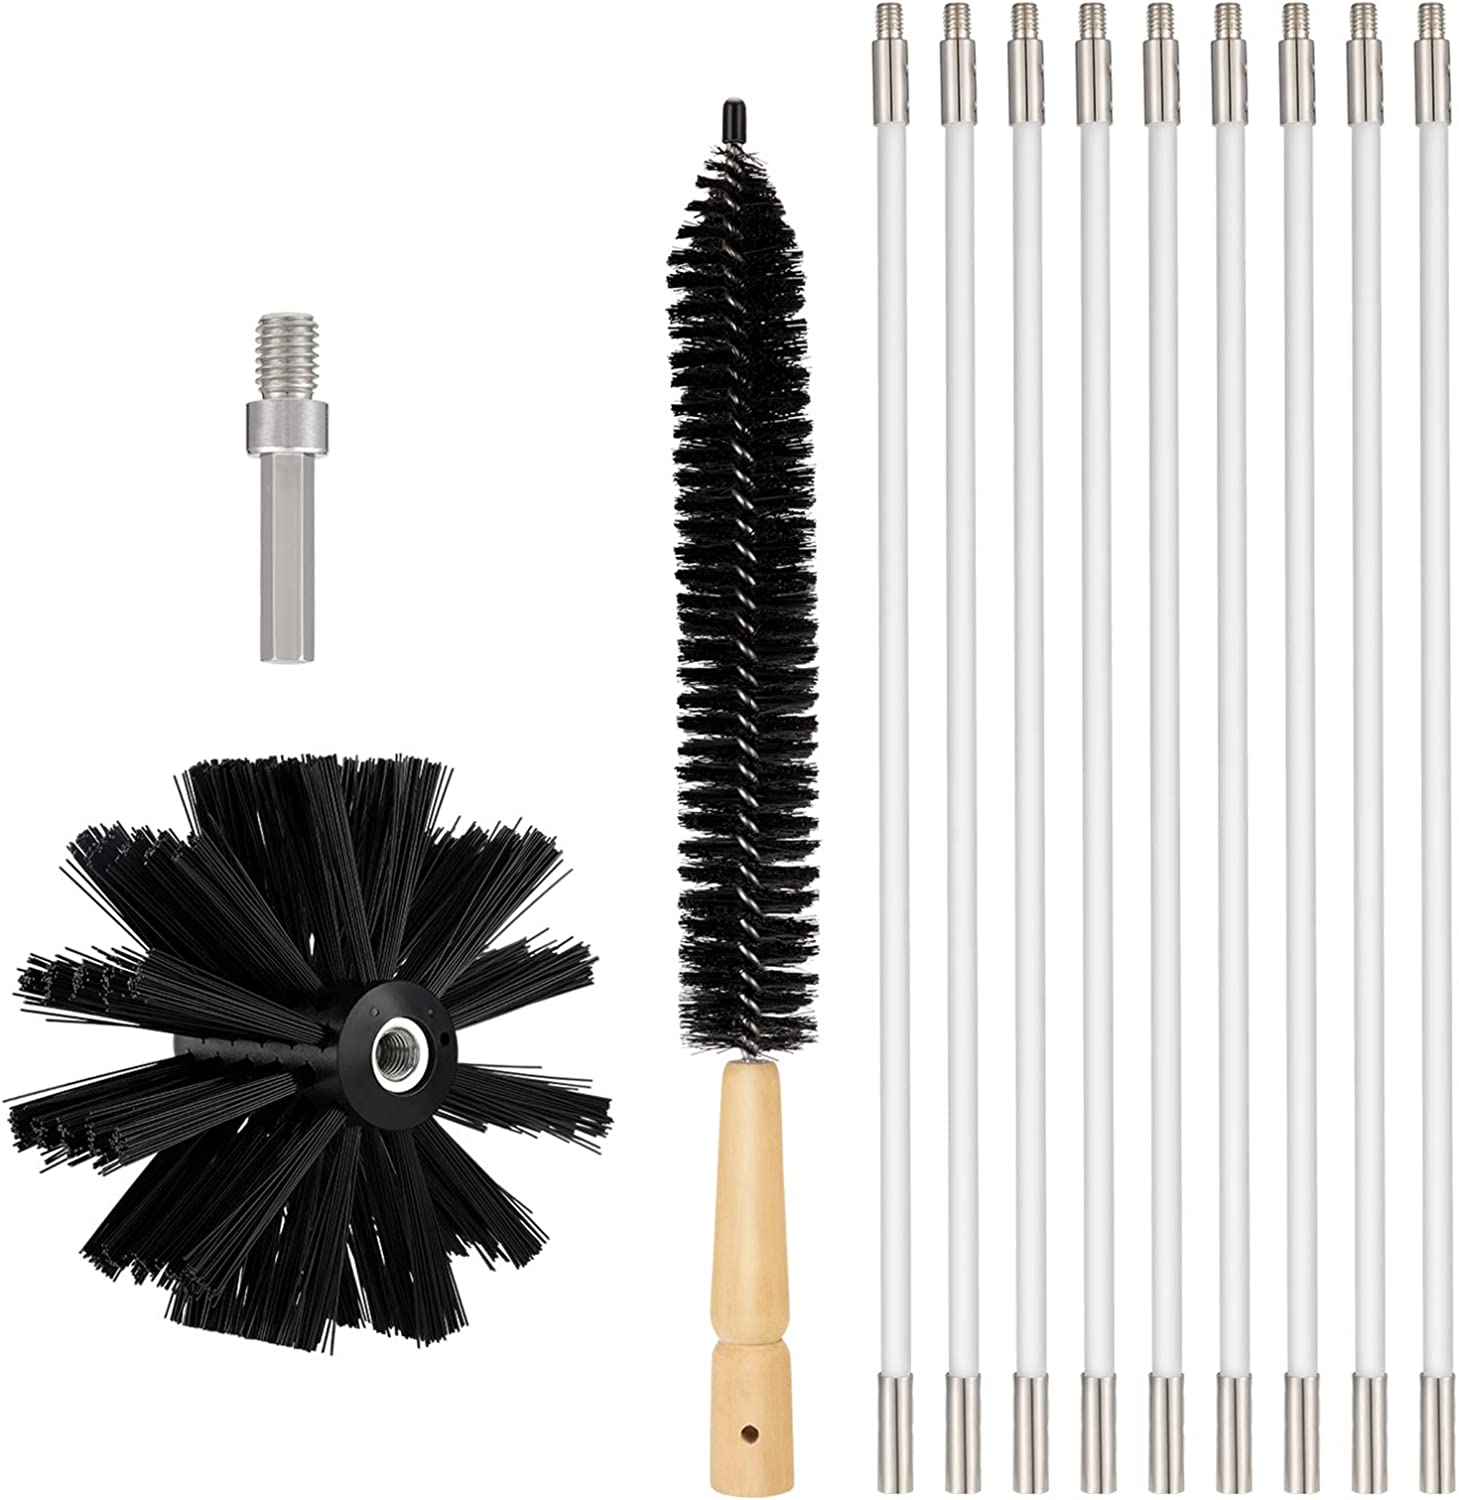 OAK LEAF Dryer Vent Cleaner Kit 12 Feet, Flexible 9 Rods Dry Duct Cleaning Kit Chimney Sweep Brush with Brush Head and Dryer Lint Brush, Extend up to 12 Feet, Use with or Without a Power Drill